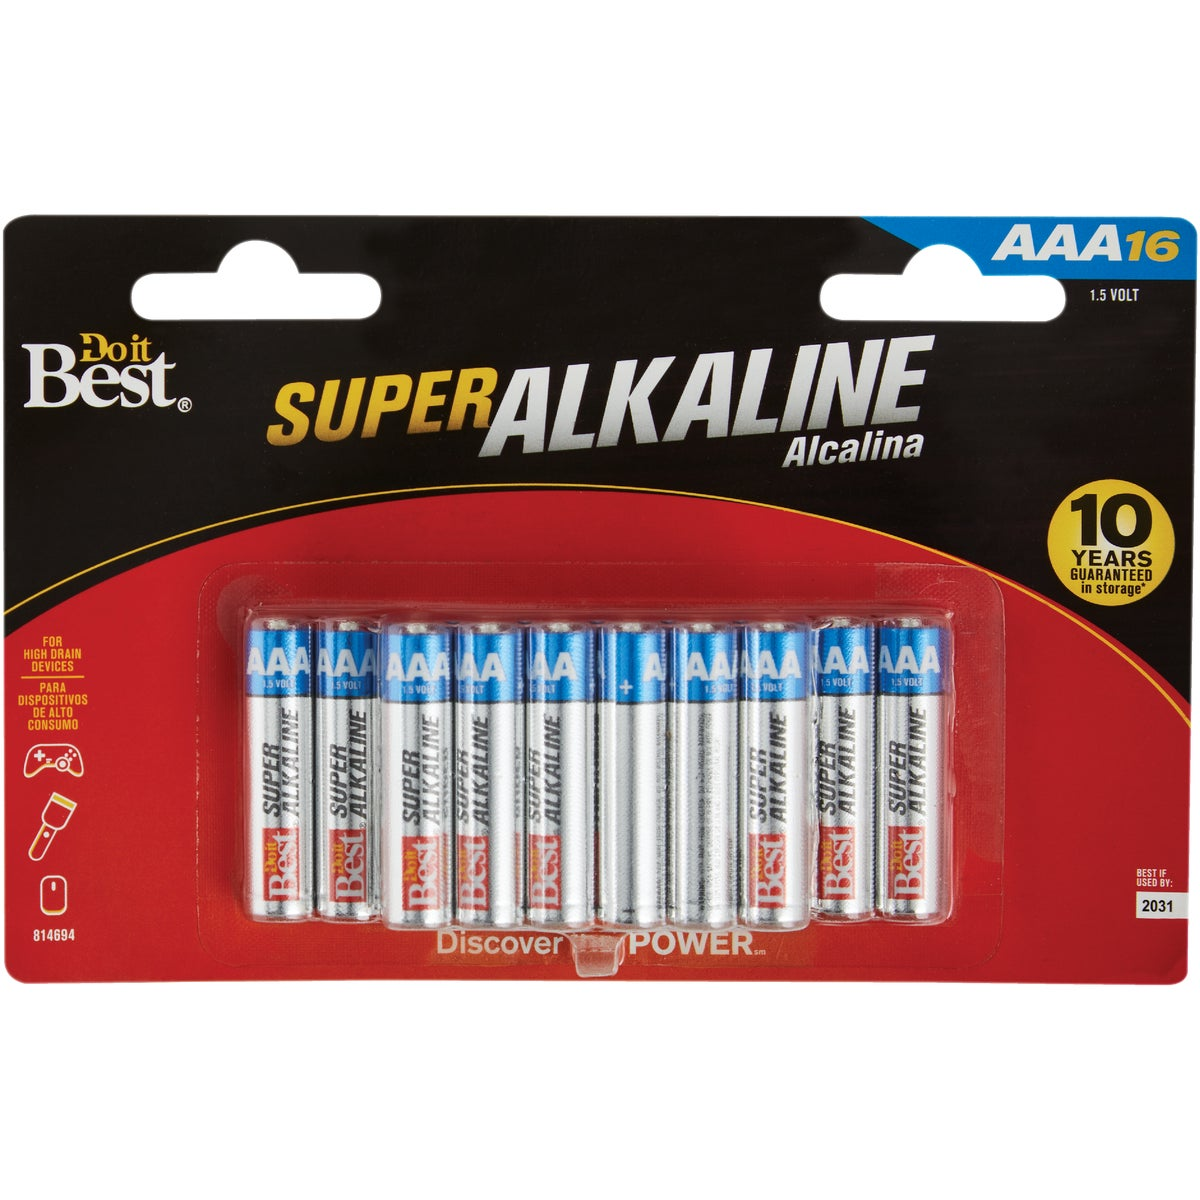 16PK DIB AAA ALK BATTERY